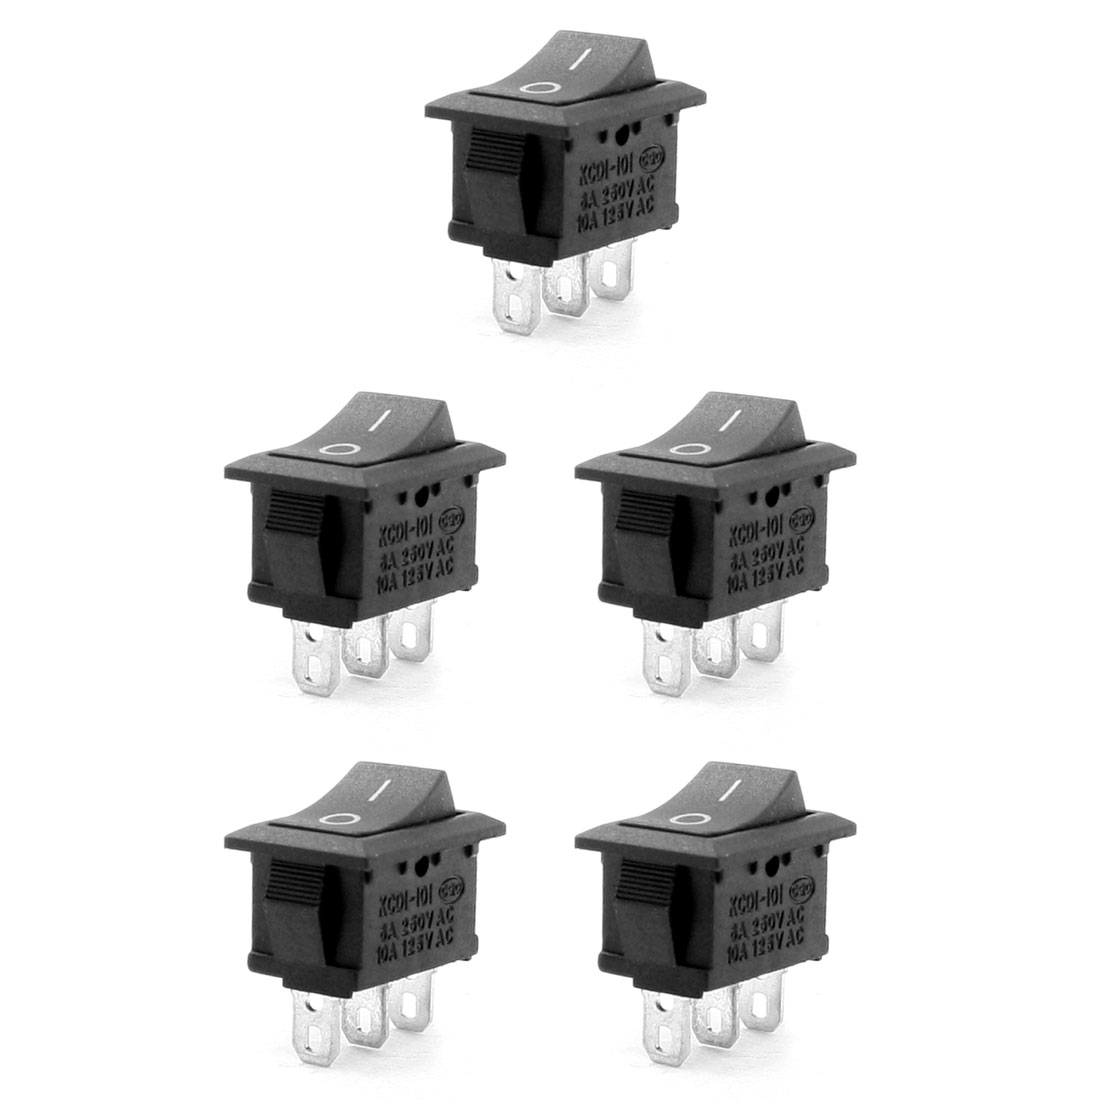 5 Pcs SPDT Black Button O/O Rectangle Rocker Switch AC 6A/250V 10A/125V